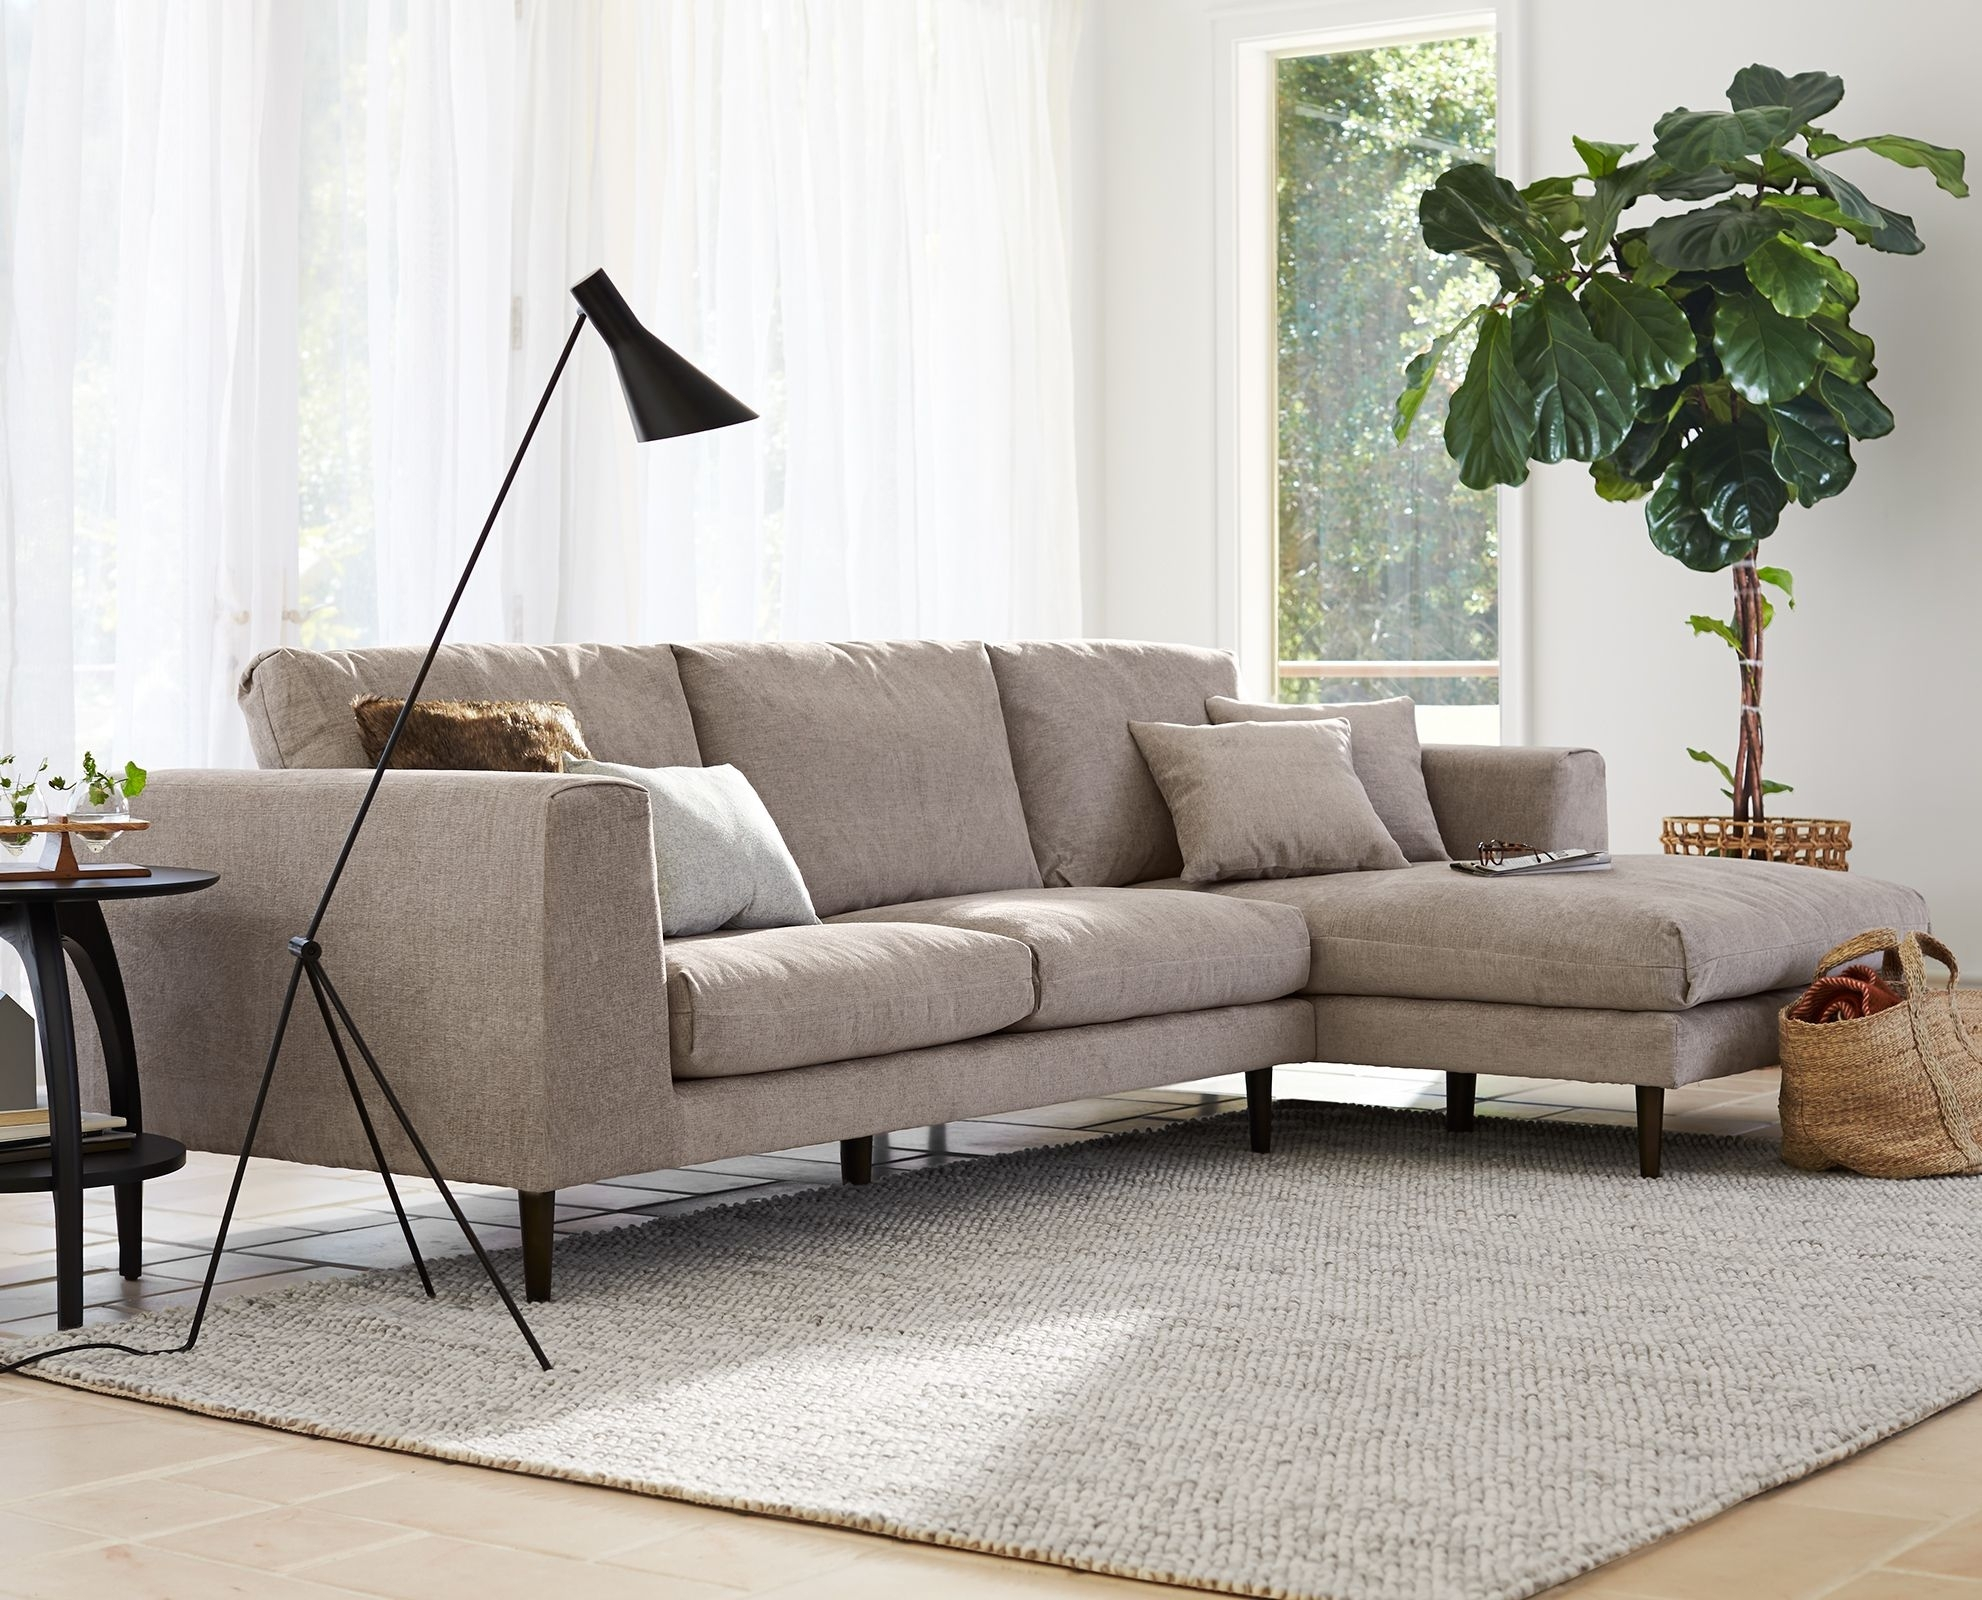 upholstery sectional essentials gray width height threshold chaise item products belfort heights columbia sofa trim